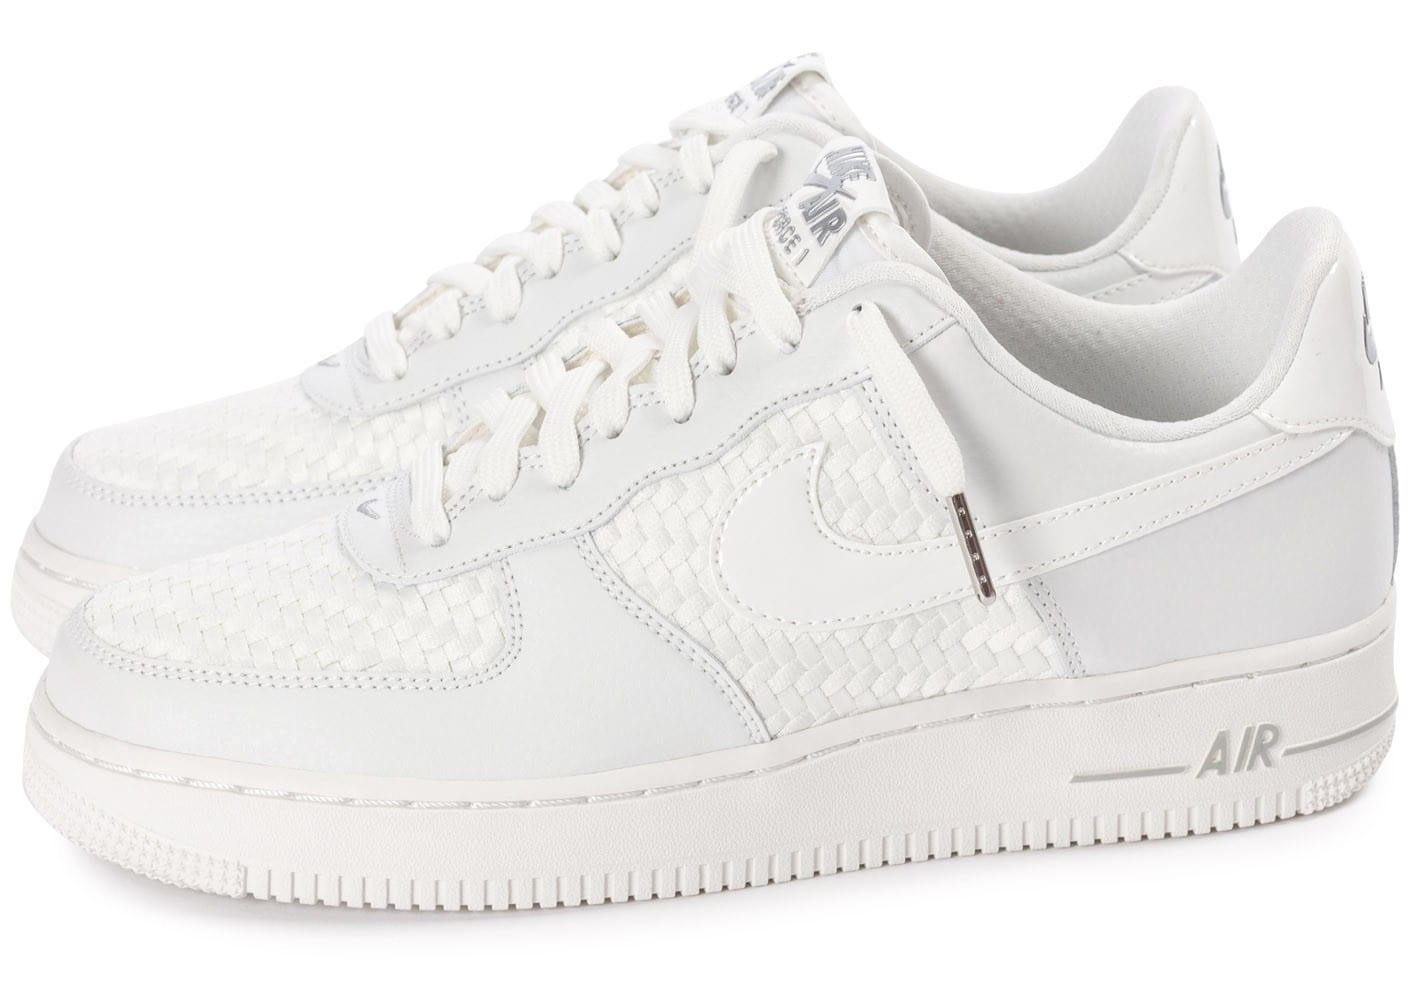 nike air force 1 lv8 low blanche chaussures homme chausport. Black Bedroom Furniture Sets. Home Design Ideas